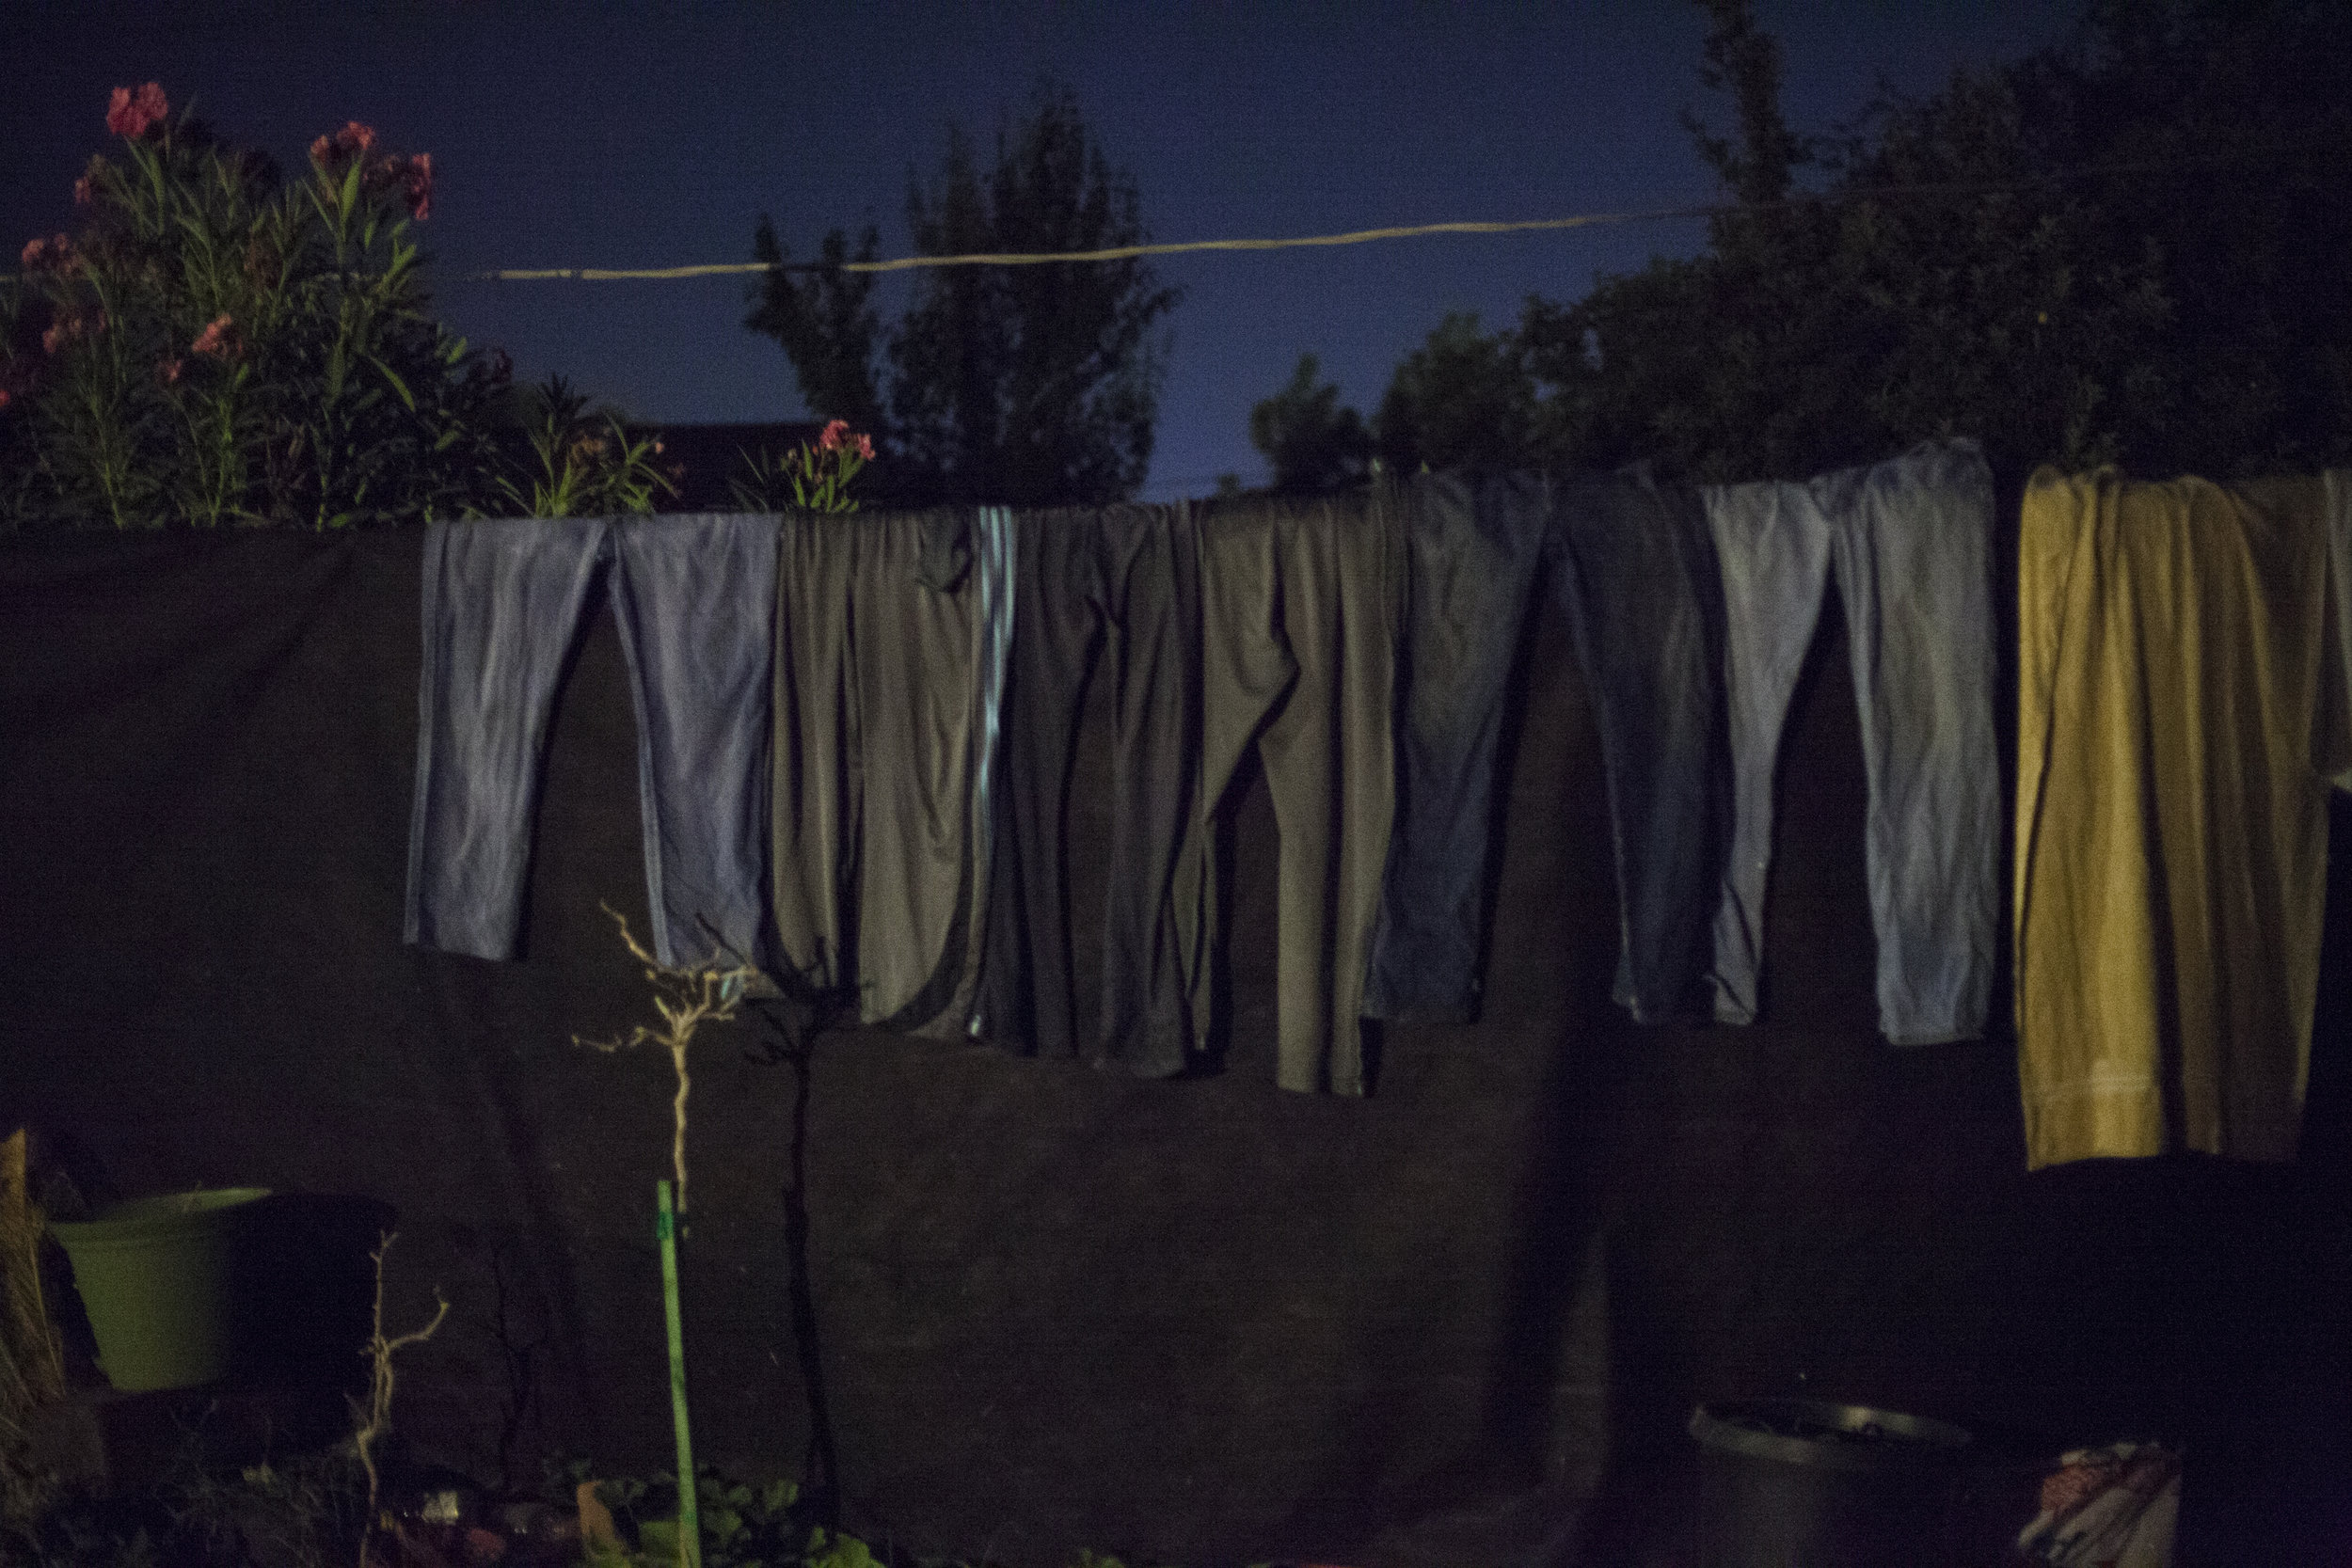 A clothing line full of wet clothes sits on the fence in Blanca's backyard in Bakersfield, CA. Photographed on August 24, 2013.